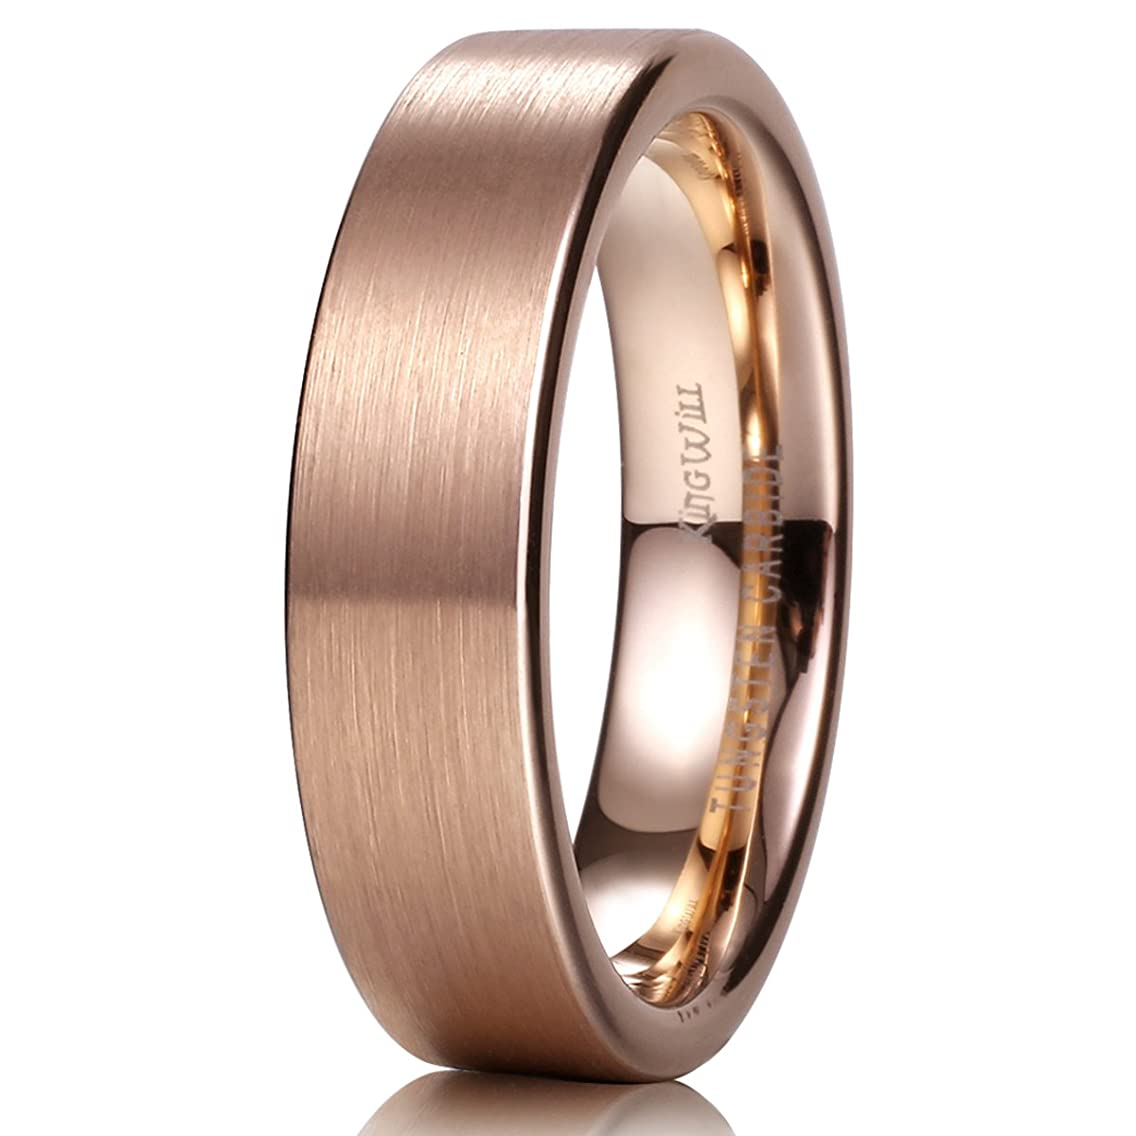 King Will Glory Unisex 6mm 18K Rose Gold Tungsten Carbide Wedding Band Ring Pipe Cut Brushed Finish